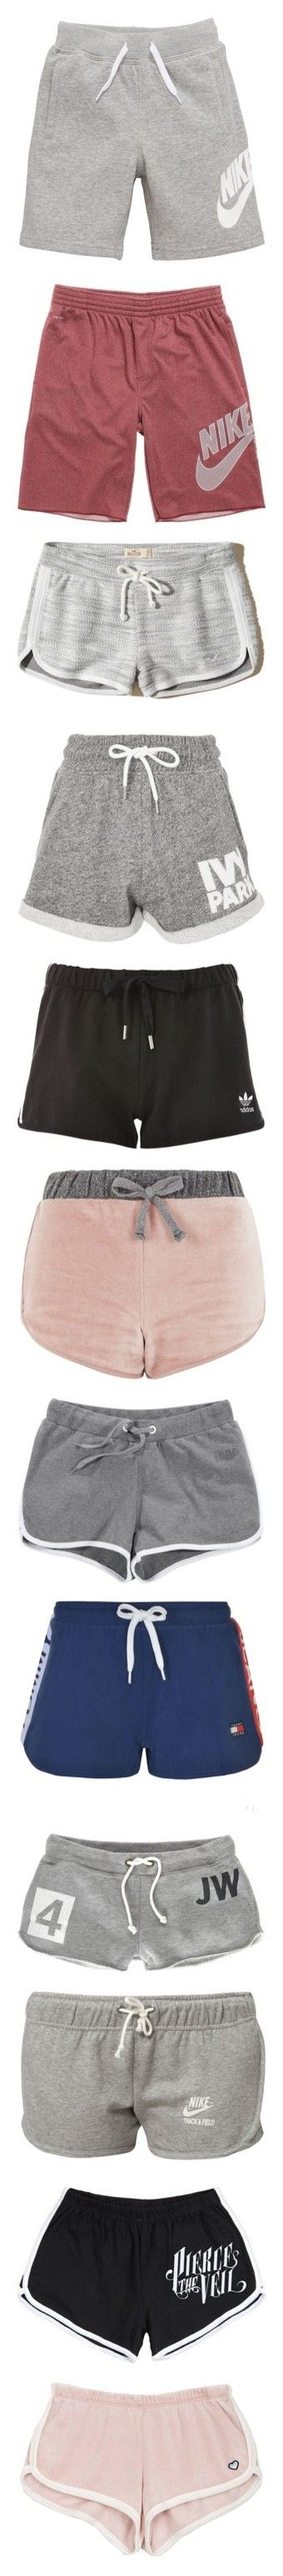 """Shorts/Skirts"" by nasza ❤ liked on Polyvore featuring men's fashion, men's clothing, men's activewear, men's activewear shorts, red, nike, shorts, bottoms, short and pants"